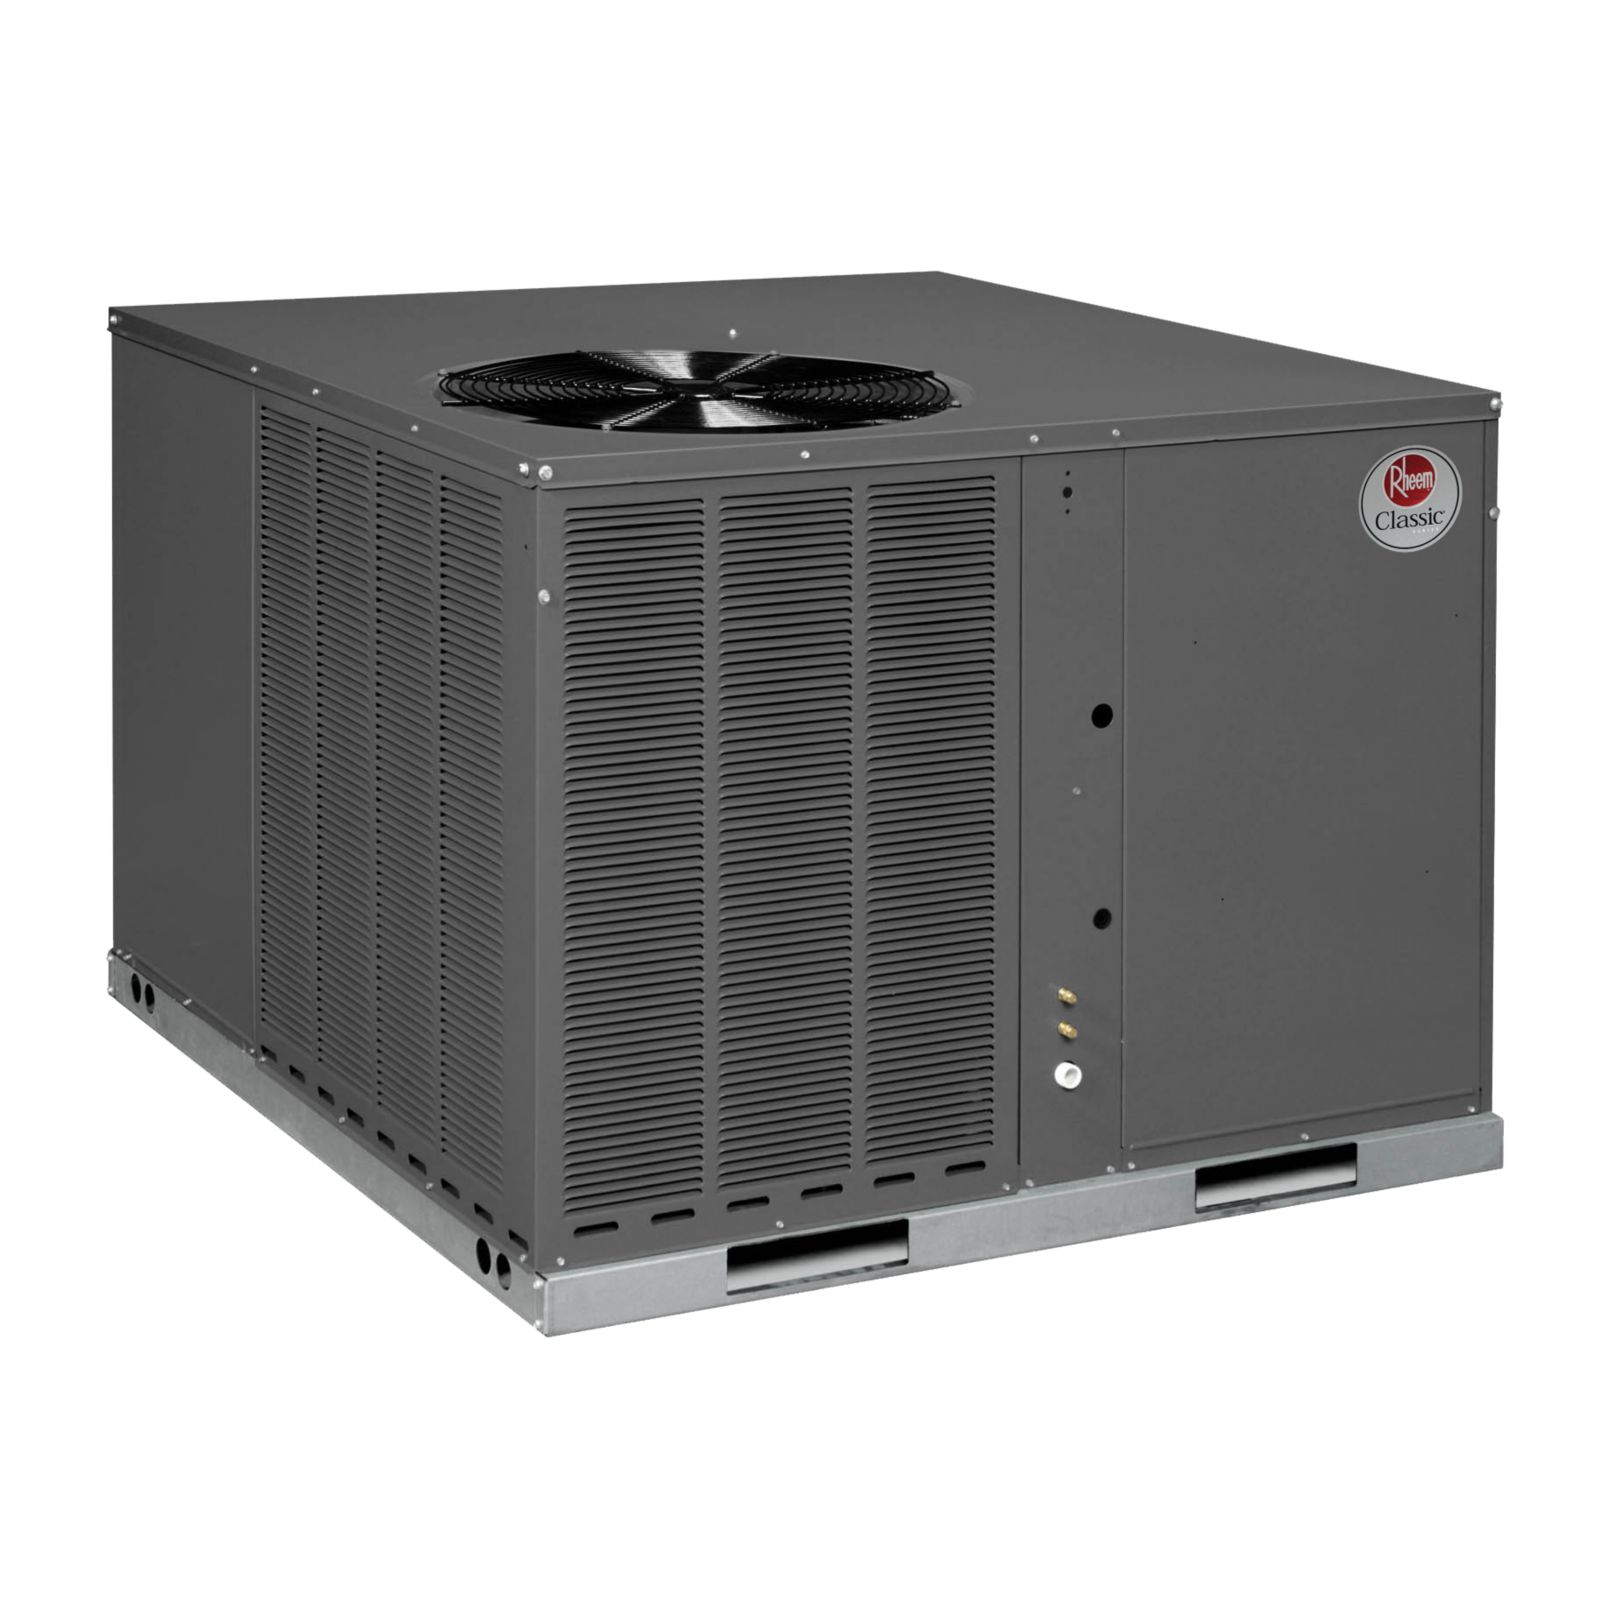 Rheem RQPL-B025JK000AUA - 2 Ton 14 SEER, R-410A, Packaged Heat Pump, 208-230V, 1 Phase